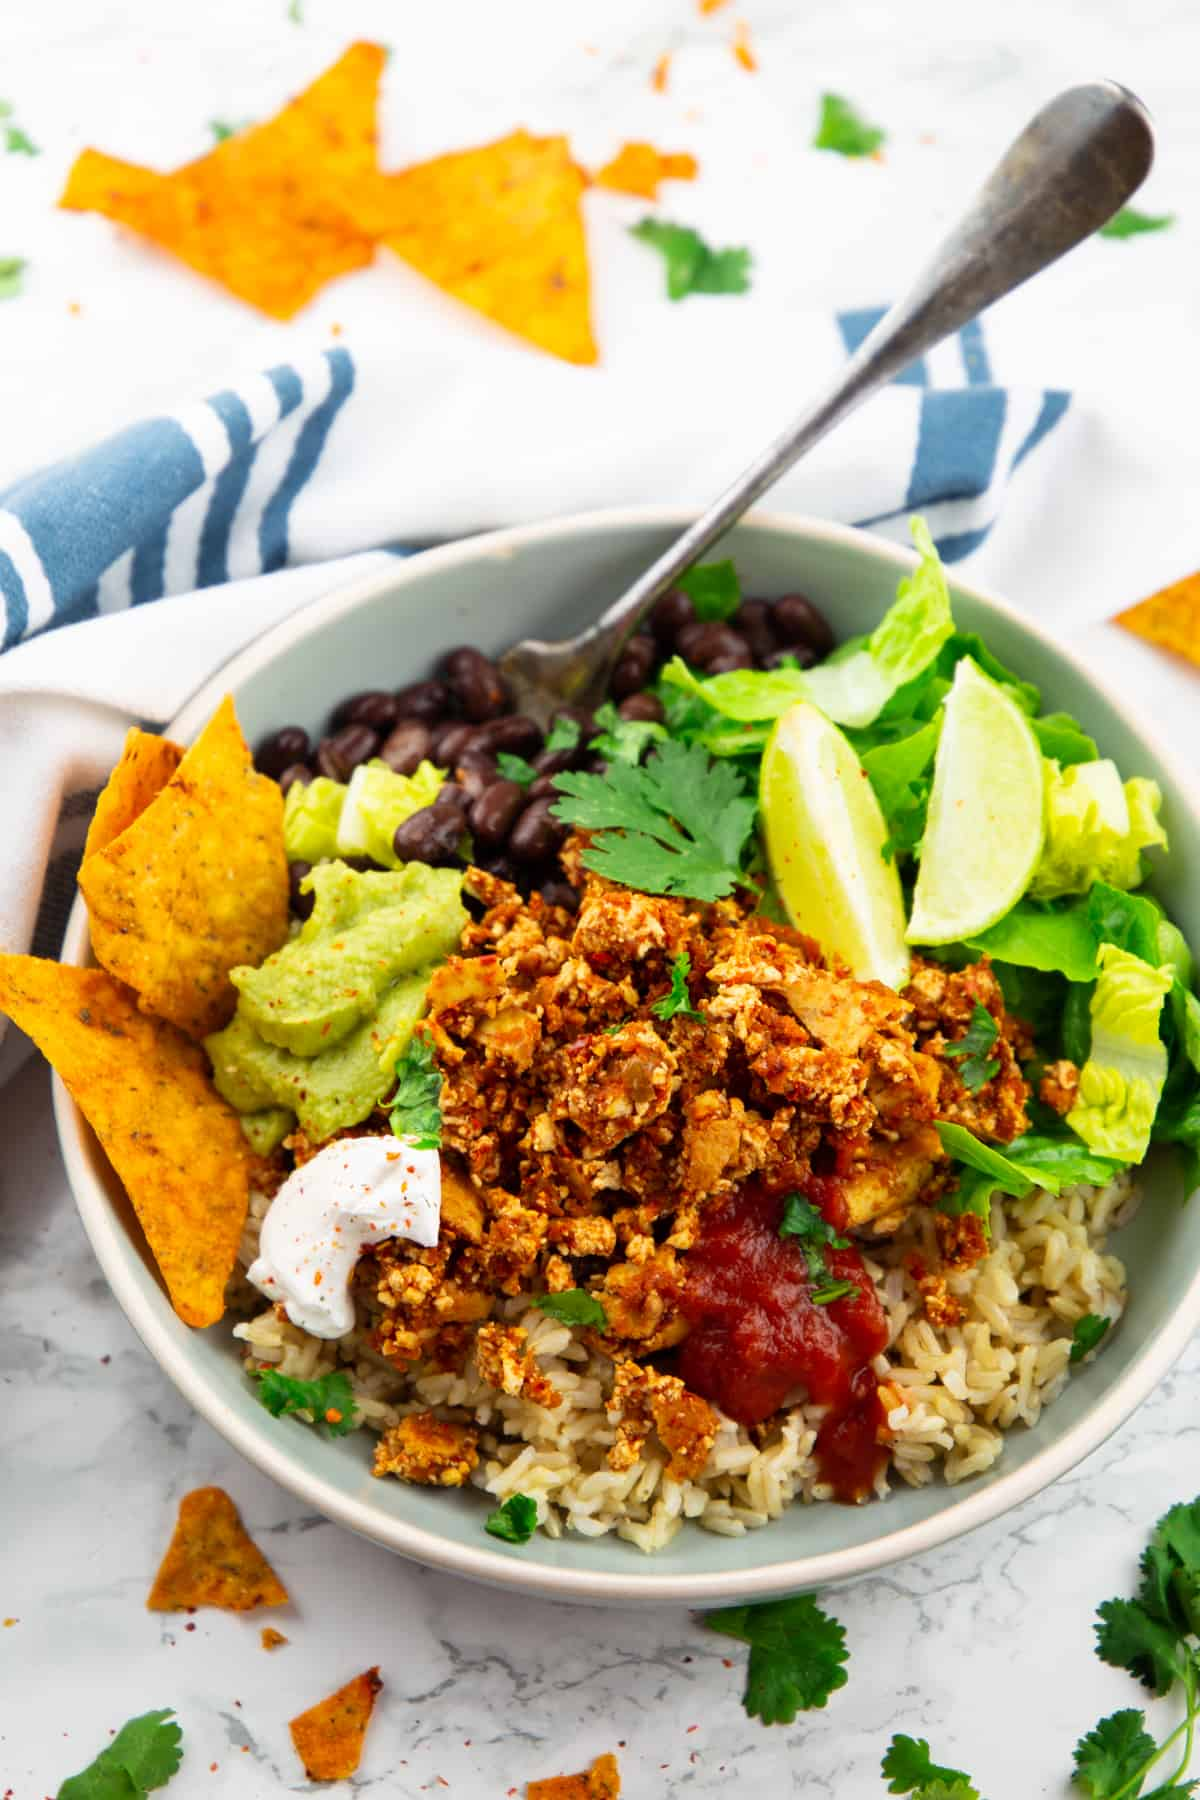 a gerat bowl with brown rice, lettuce, guacamole, and sofritas with a fork